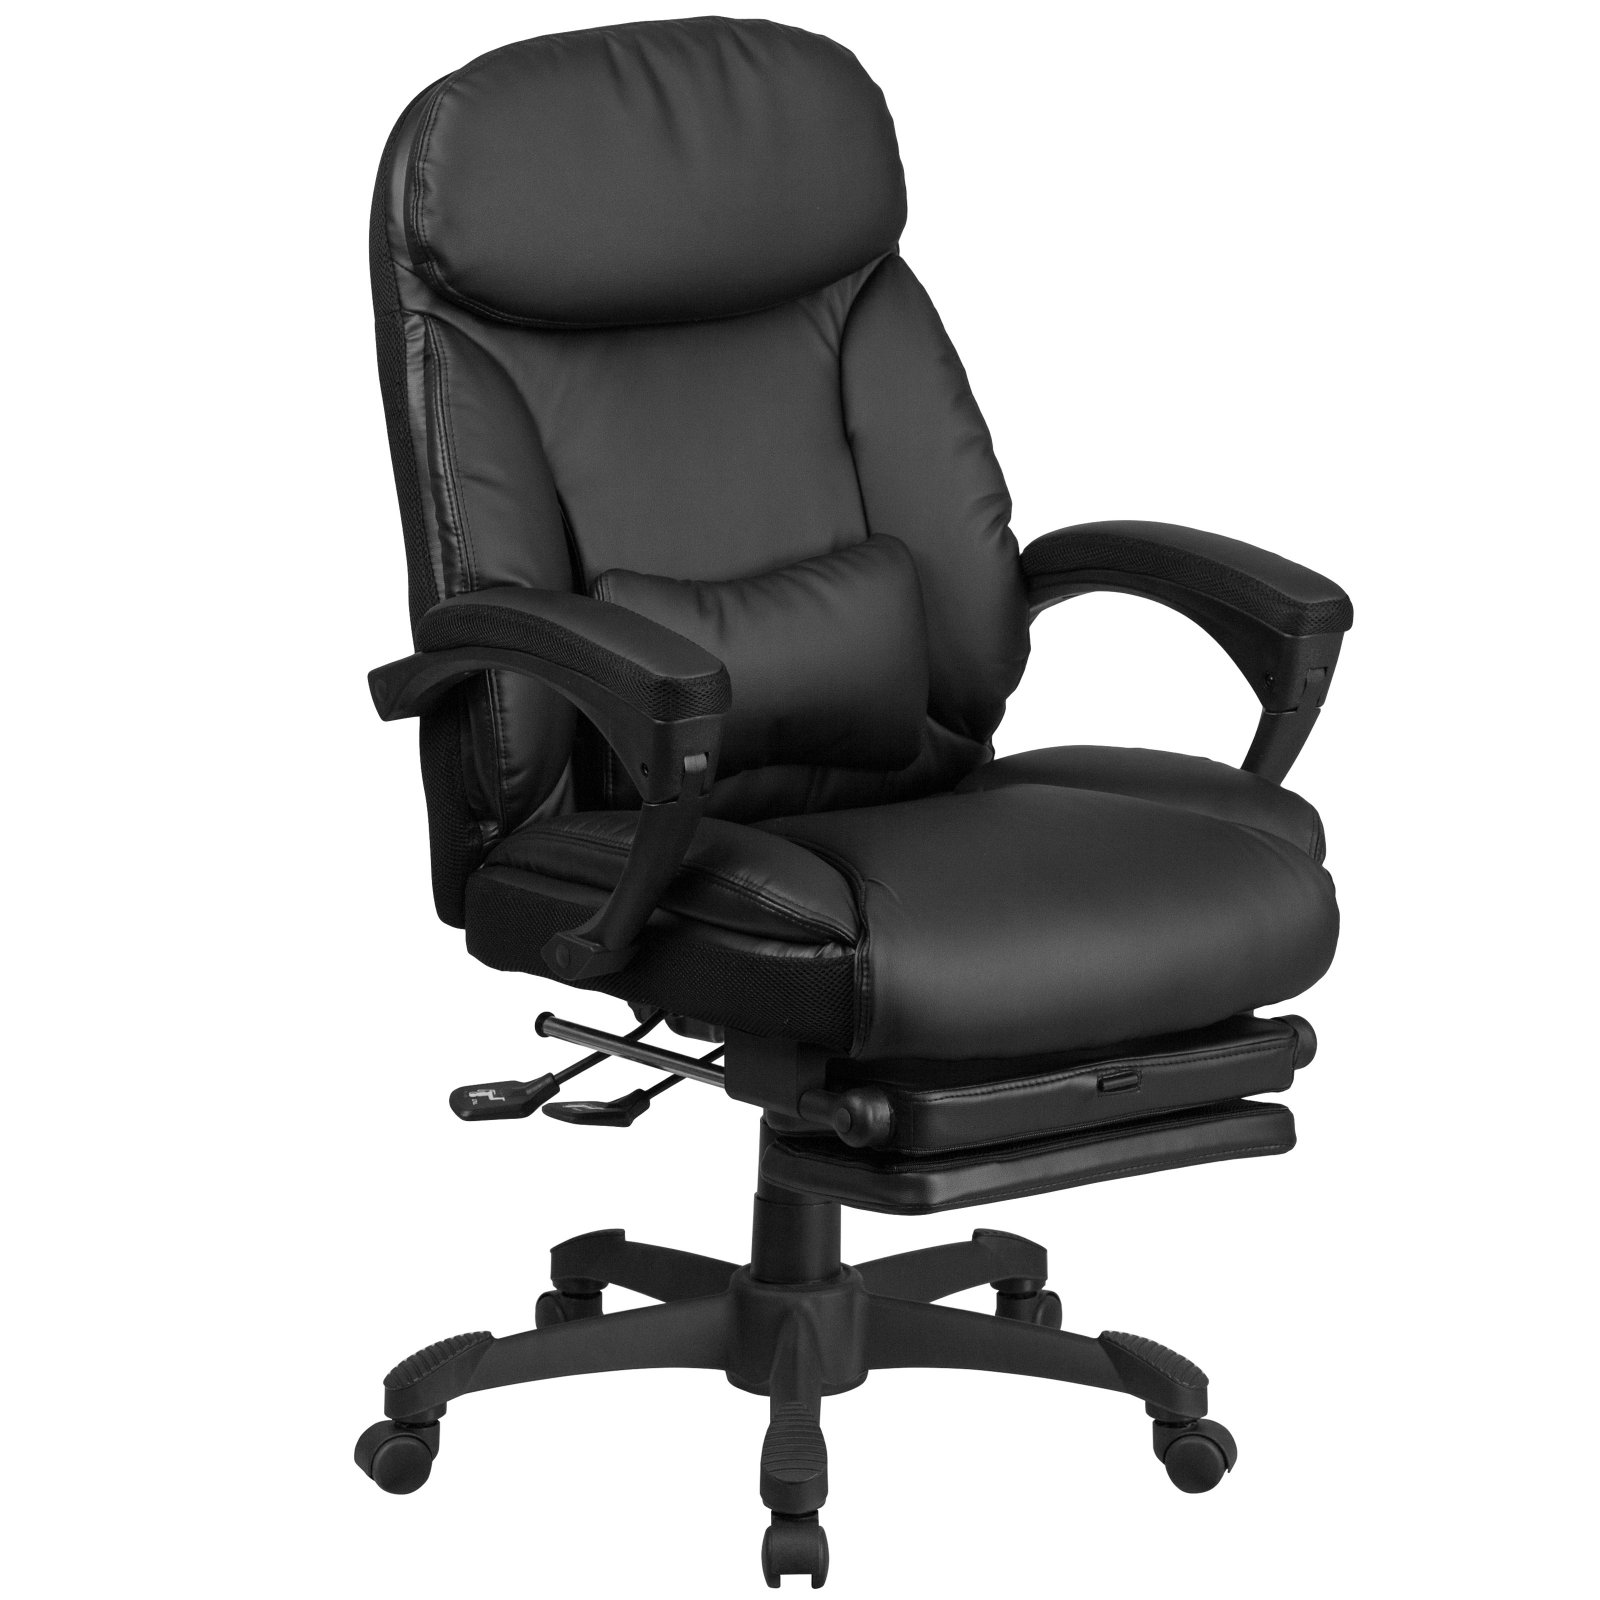 walmart leather office chair Flash Furniture High Back Black Leather Executive Reclining Swivel Office Chair with Comfort